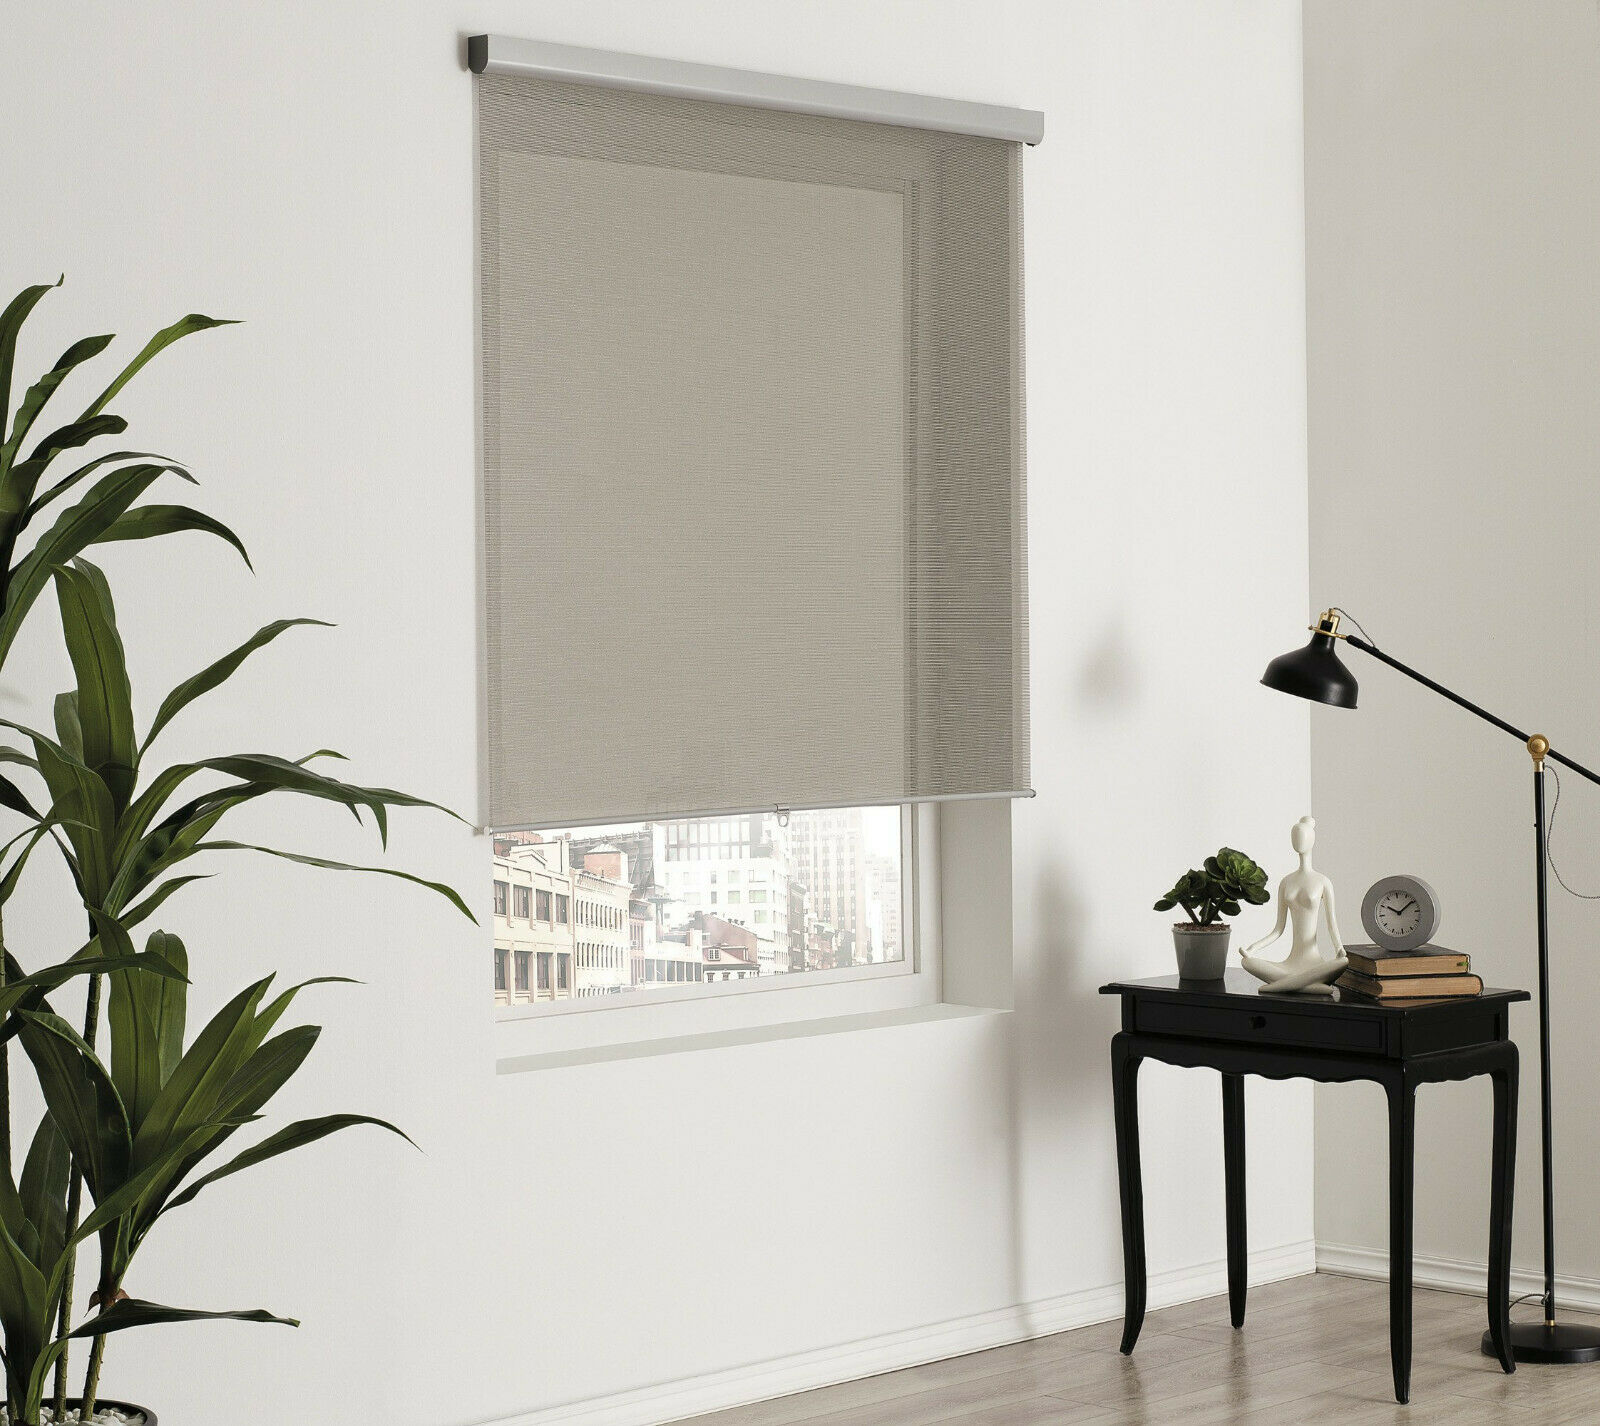 Open Weave Cordless Roller Shade Blinds & Shades